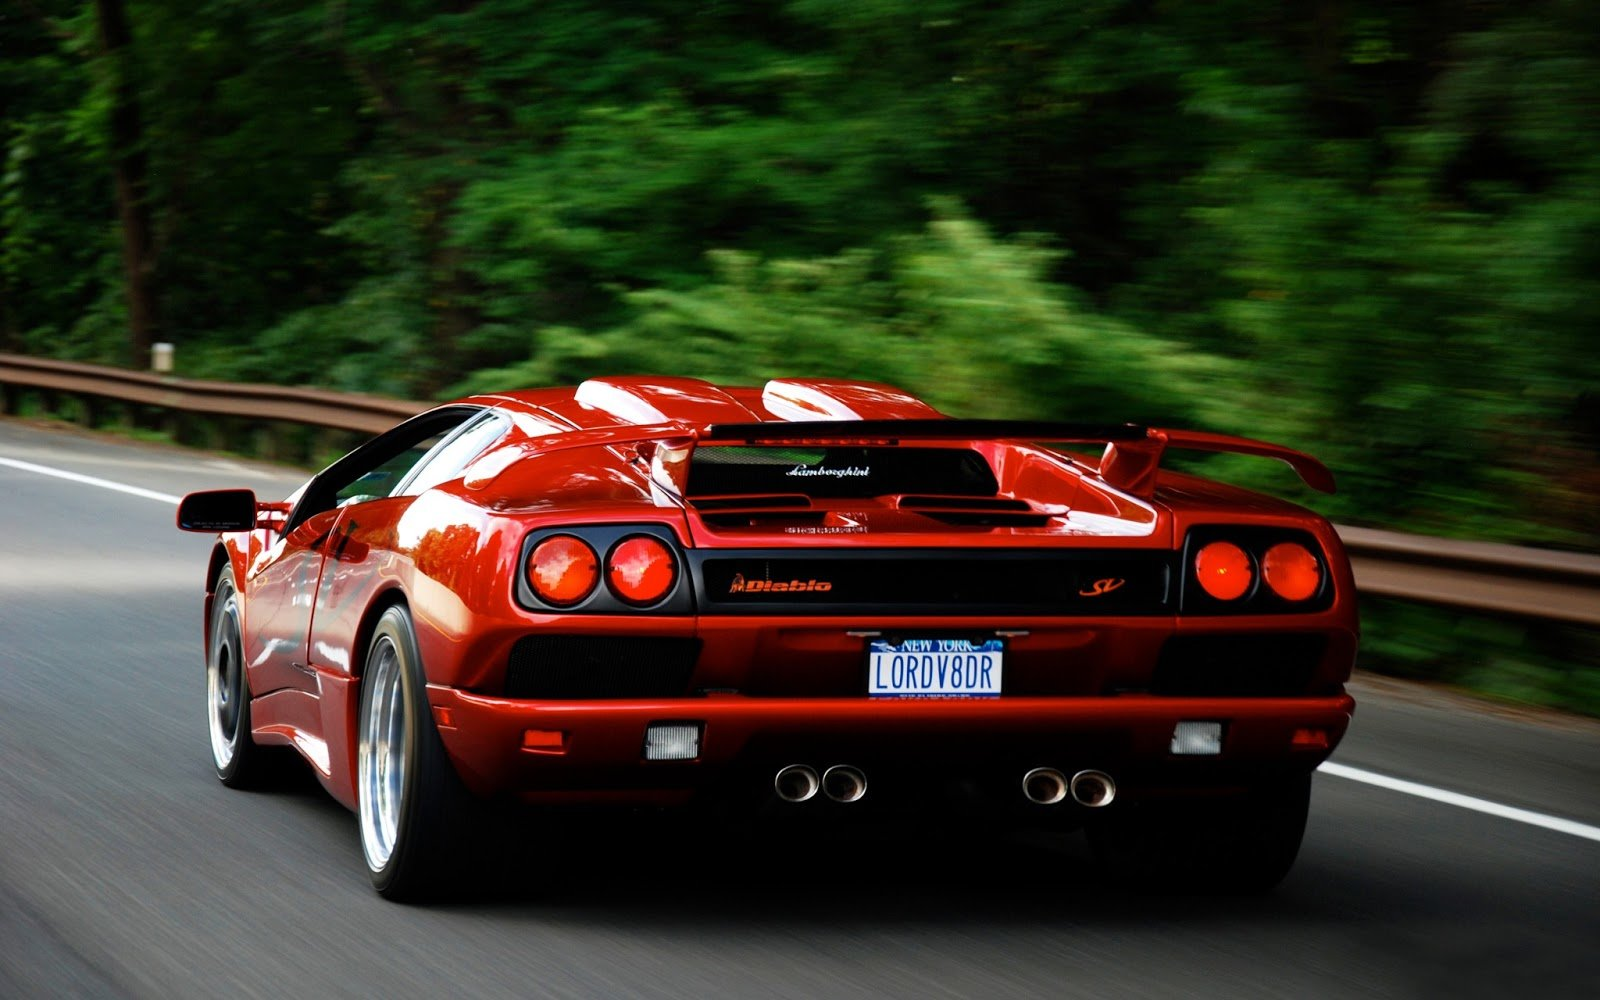 New Hd Cars Wallpapers Lamborghini Diablo On This Month